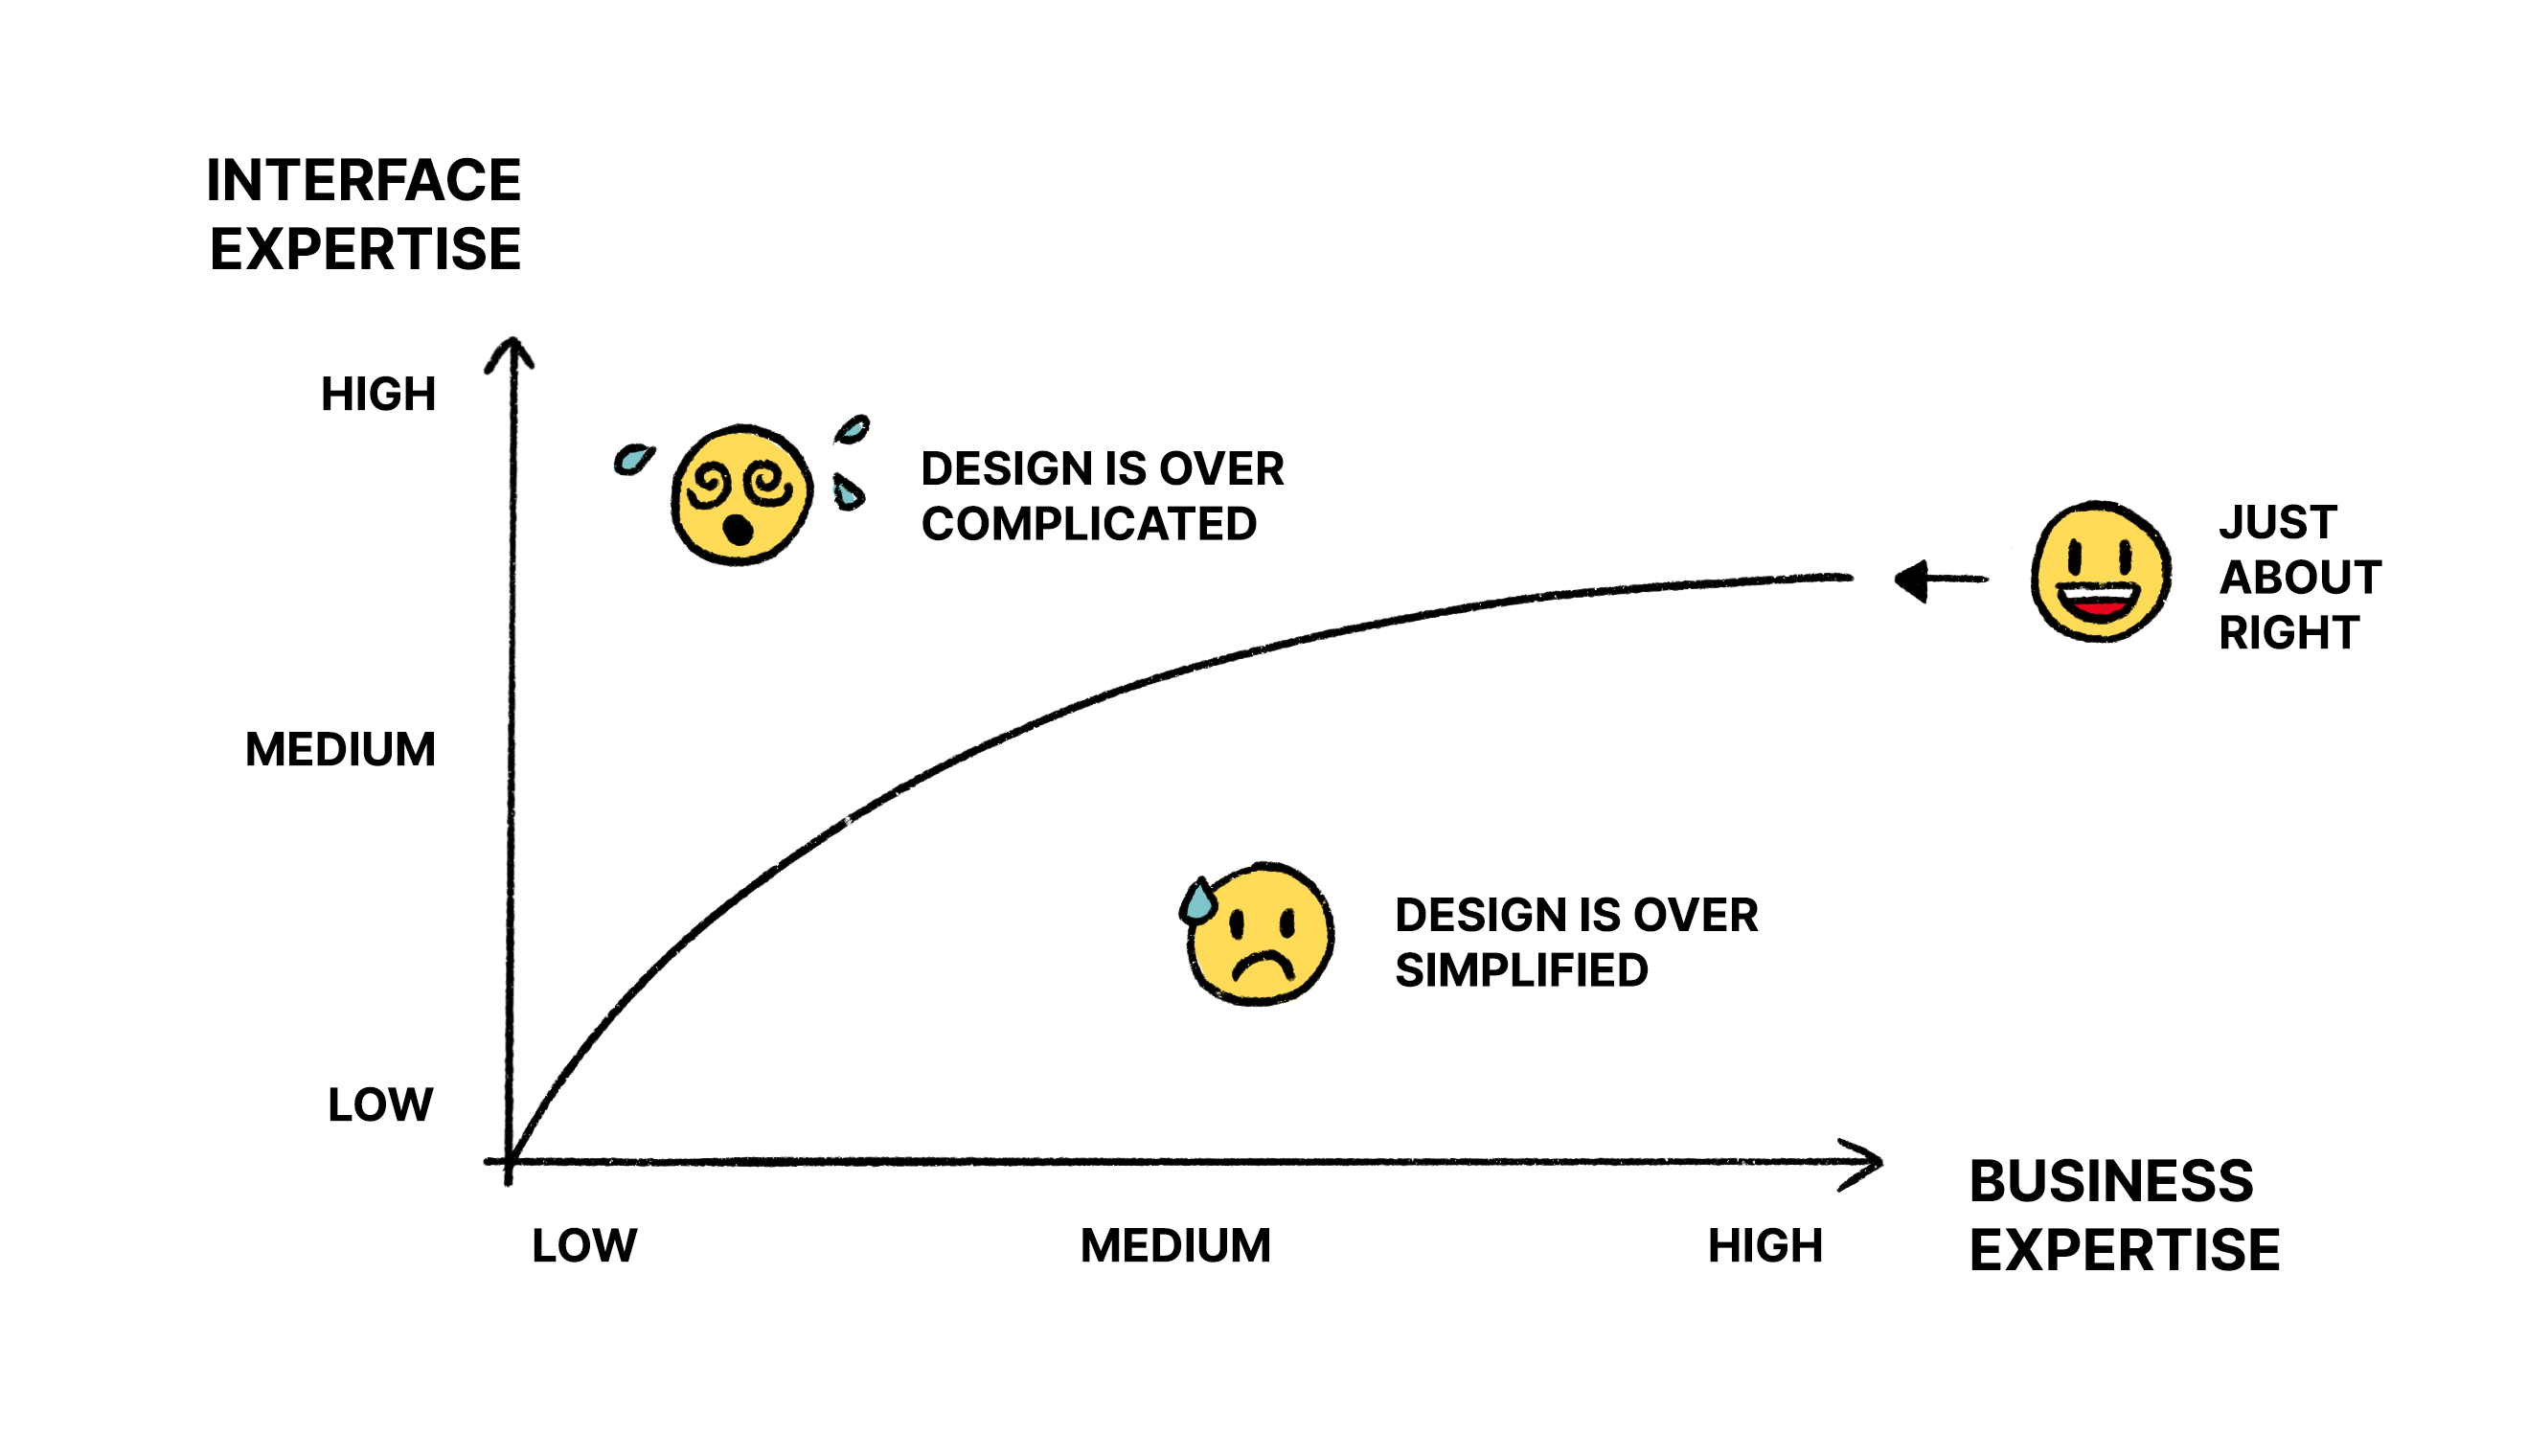 A graph with business expertise on x-axis and interface expertise on y-axis.